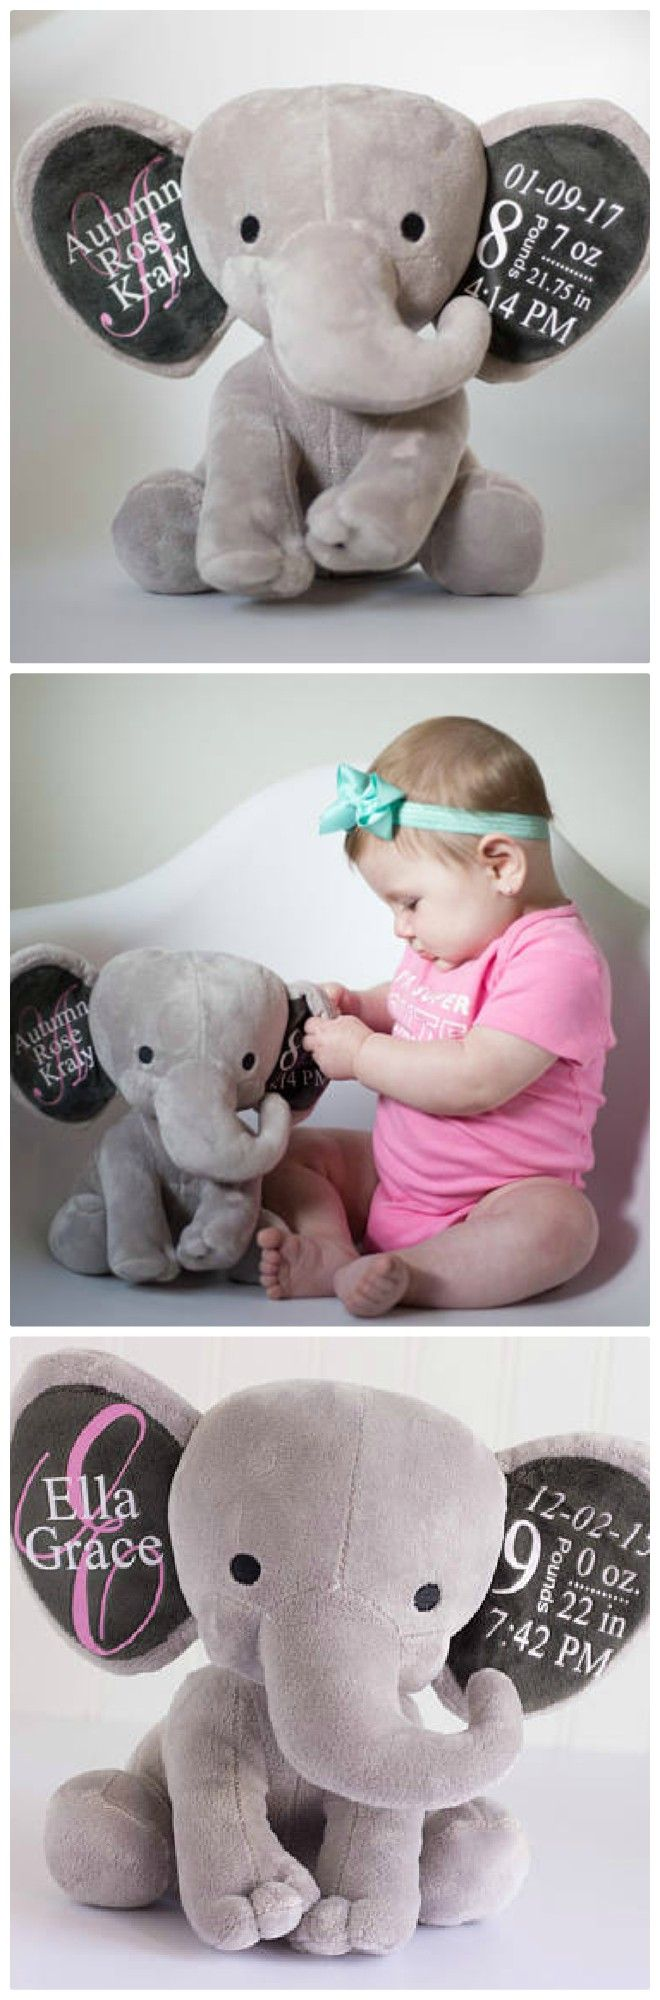 Stuffed elephant customized with all the baby's birth information on the ears! | #ad #etsy #nurseryideas #babygifts